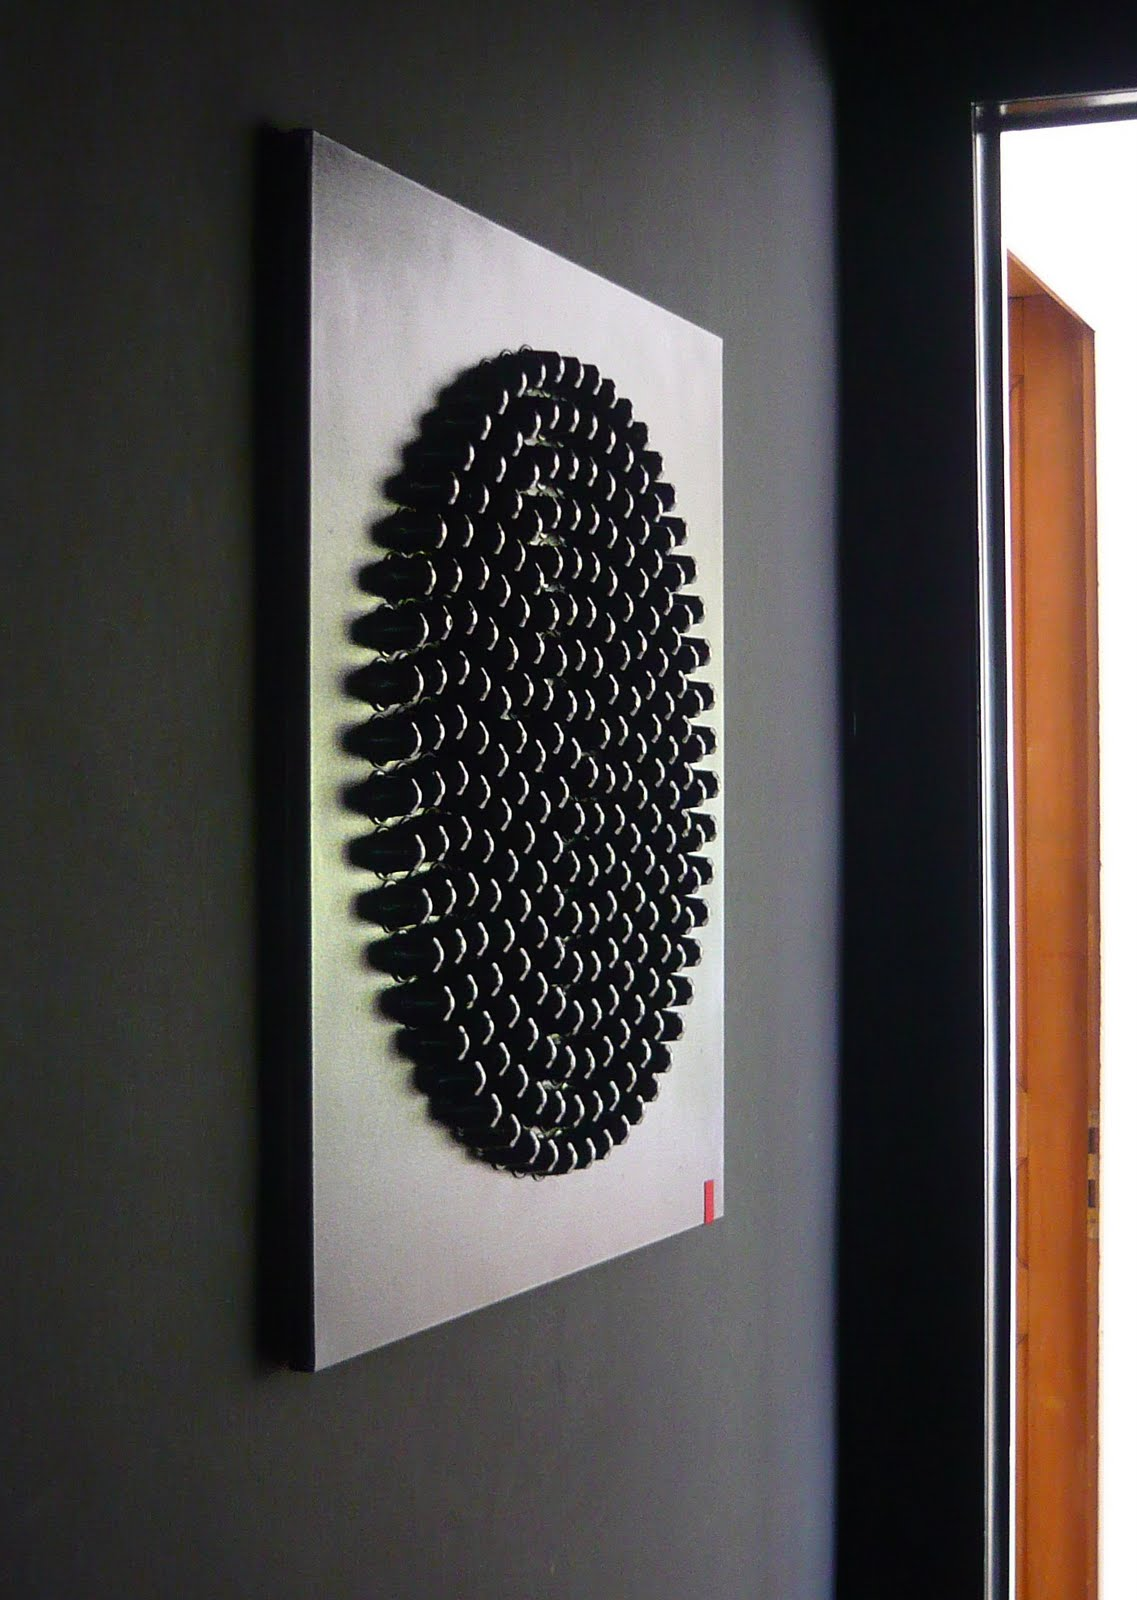 1000 images about capsules nespresso on pinterest - Que peut on faire avec des capsules nespresso ...